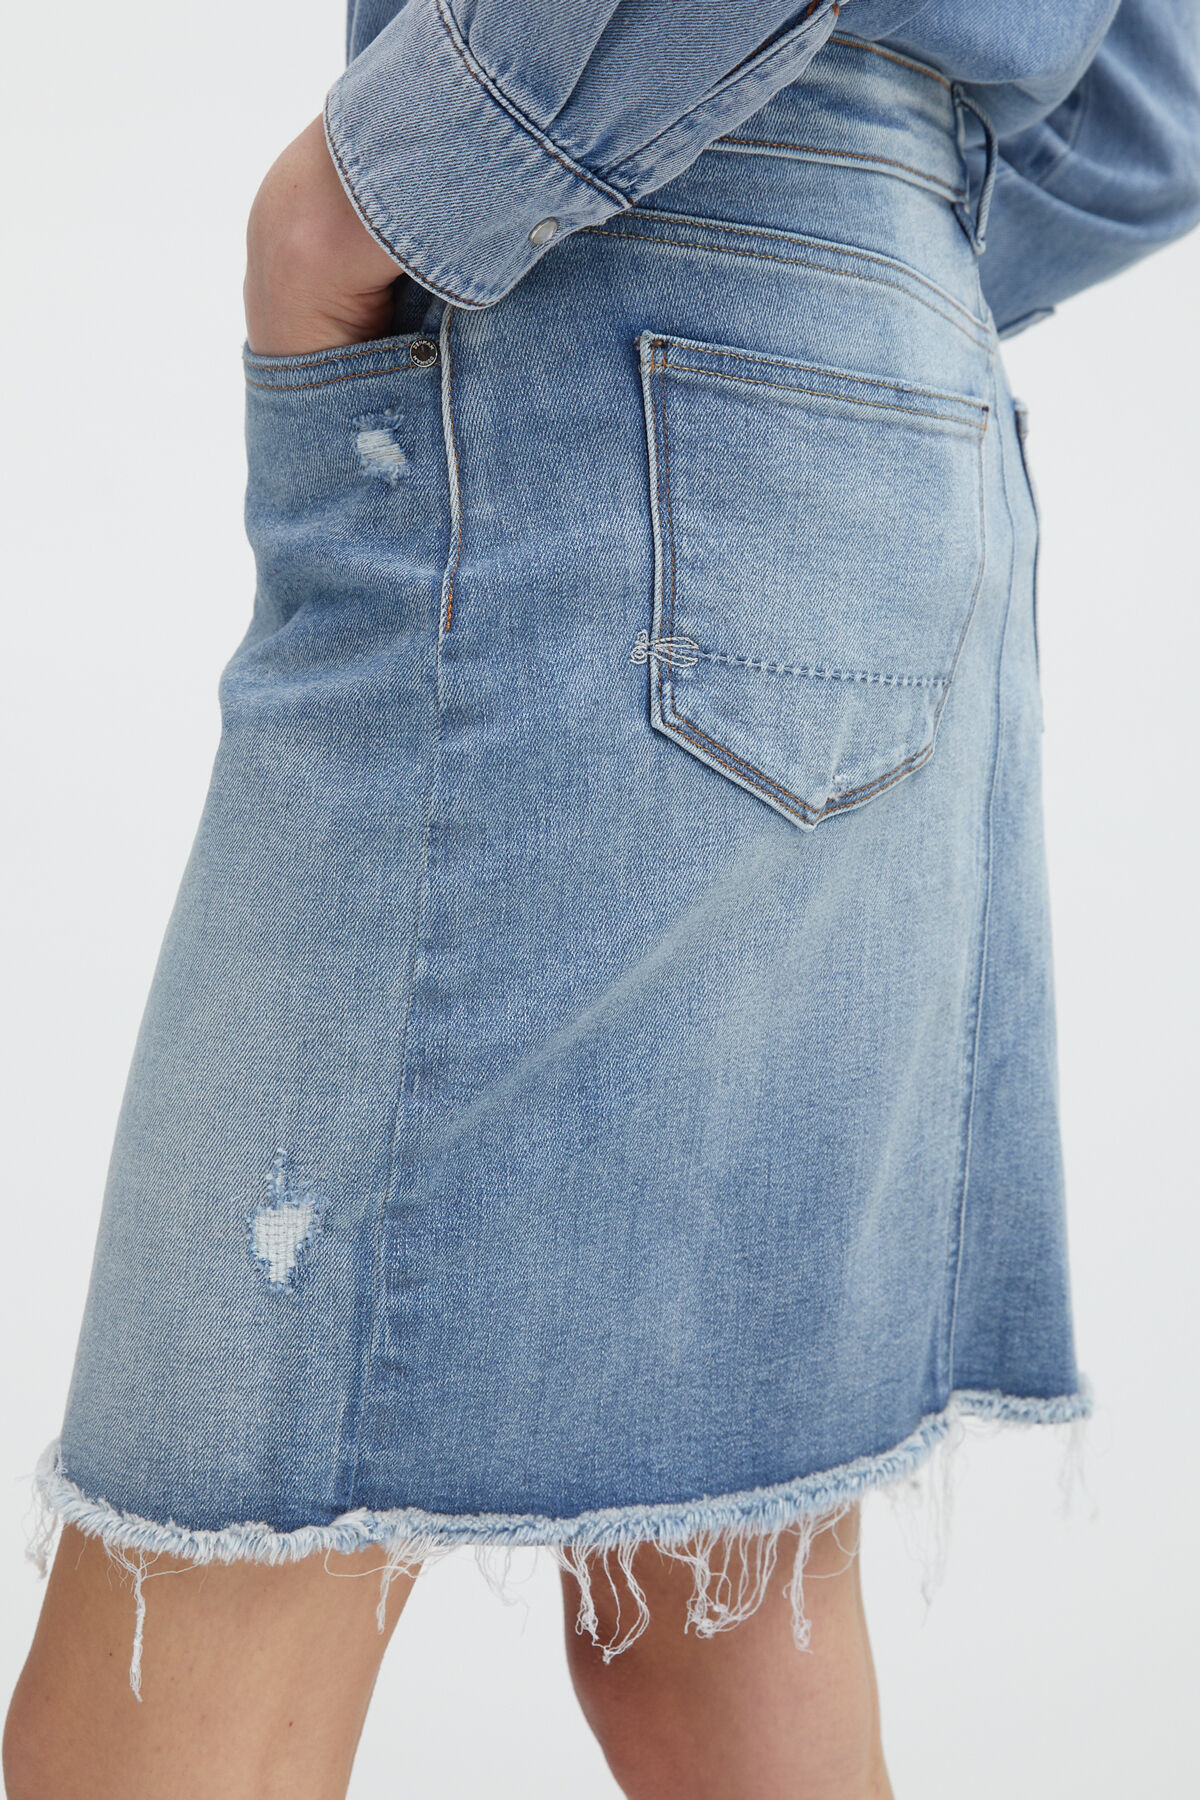 MONROE SKIRT Rip & Repair Indigo Denim